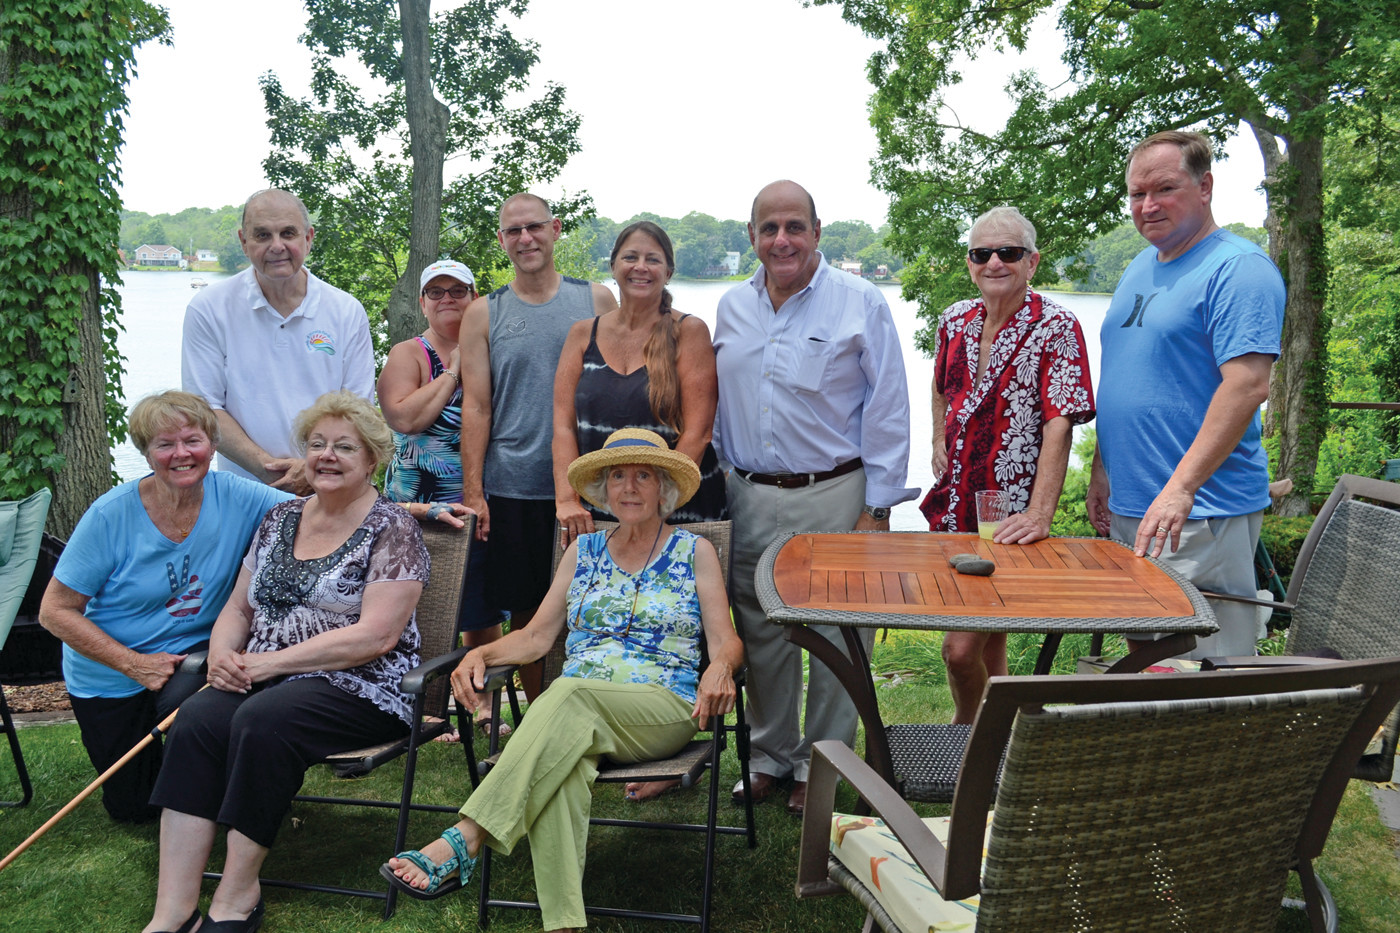 FRIENDS OF PONDS AND EACH OTHER: A post-parade barbeque gave everyone a chance to get together. Left to right, top row – Philip D'Ercole, Diane Clark, Doug Clark, Kimberlee Moore, Mayor Joseph Solomon, Bill DeNuccio, Sen. Michael McCaffrey; Lower level – Marybeth DeNuccio, Carmen D'Ercole and Jeannine Anderson. Those who showed up after the picture was taken included Madeline and Bob White, Jim and Maureen Wishart, Ruth Page and Rob Franzen and Mike Strashnick.